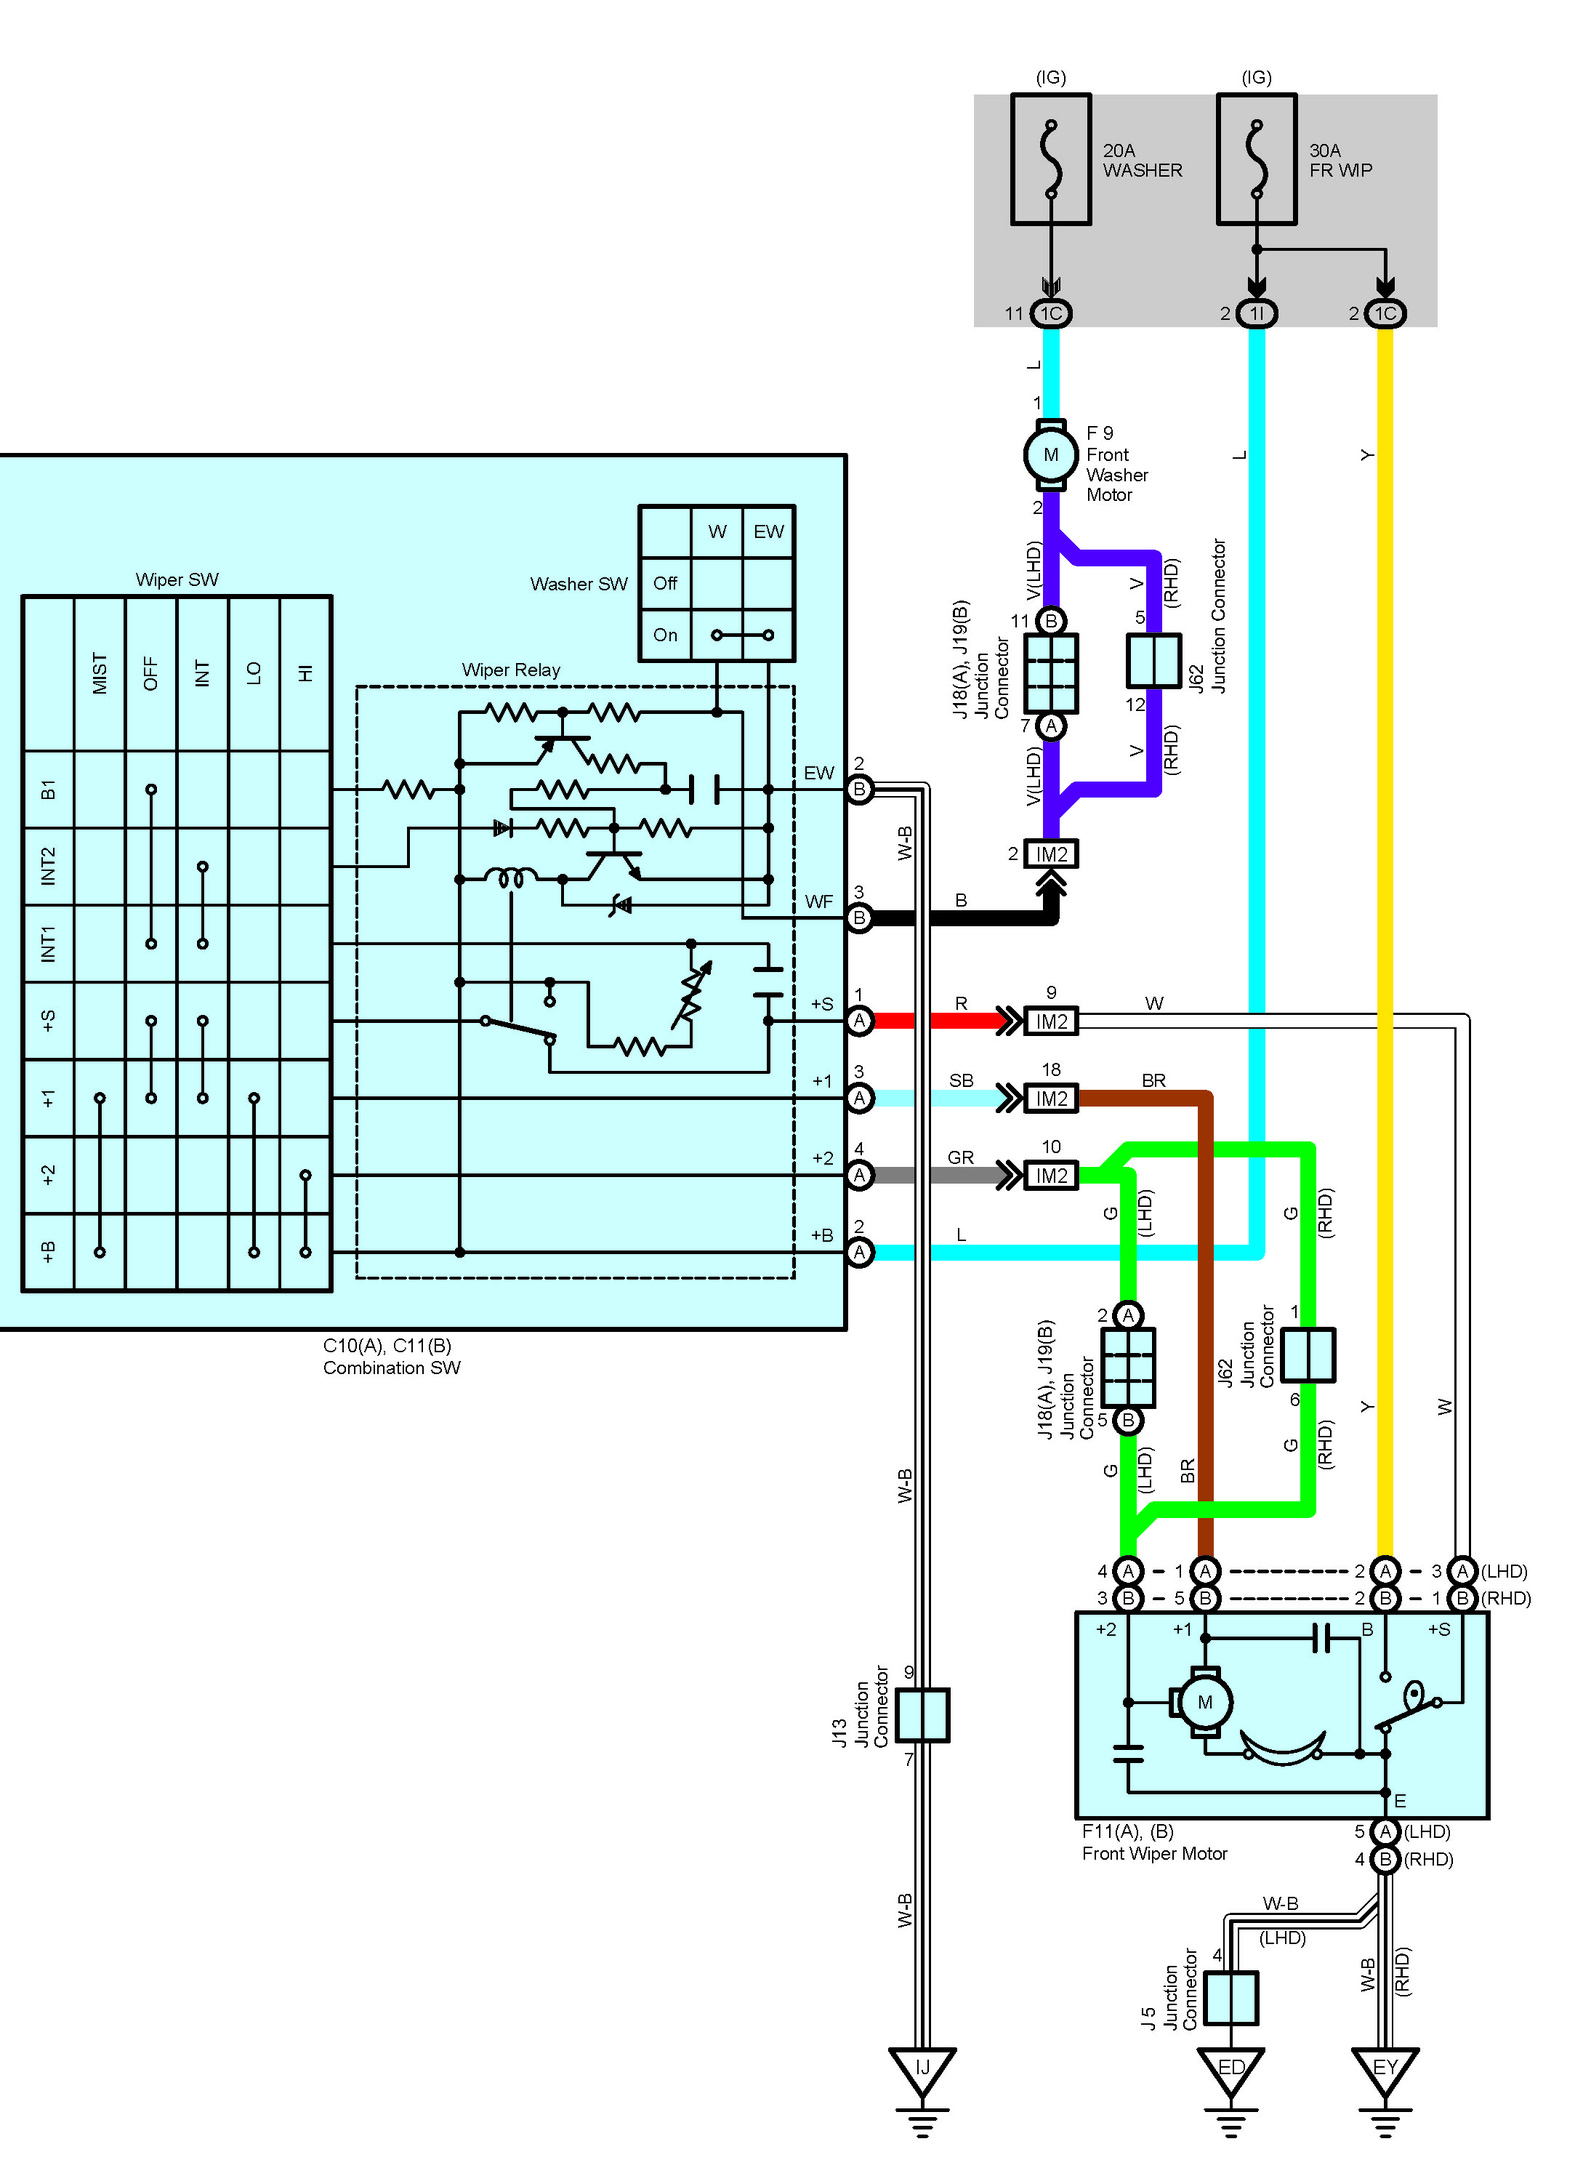 Lexus Wiper Switch Diagram - Electrical Work Wiring Diagram •